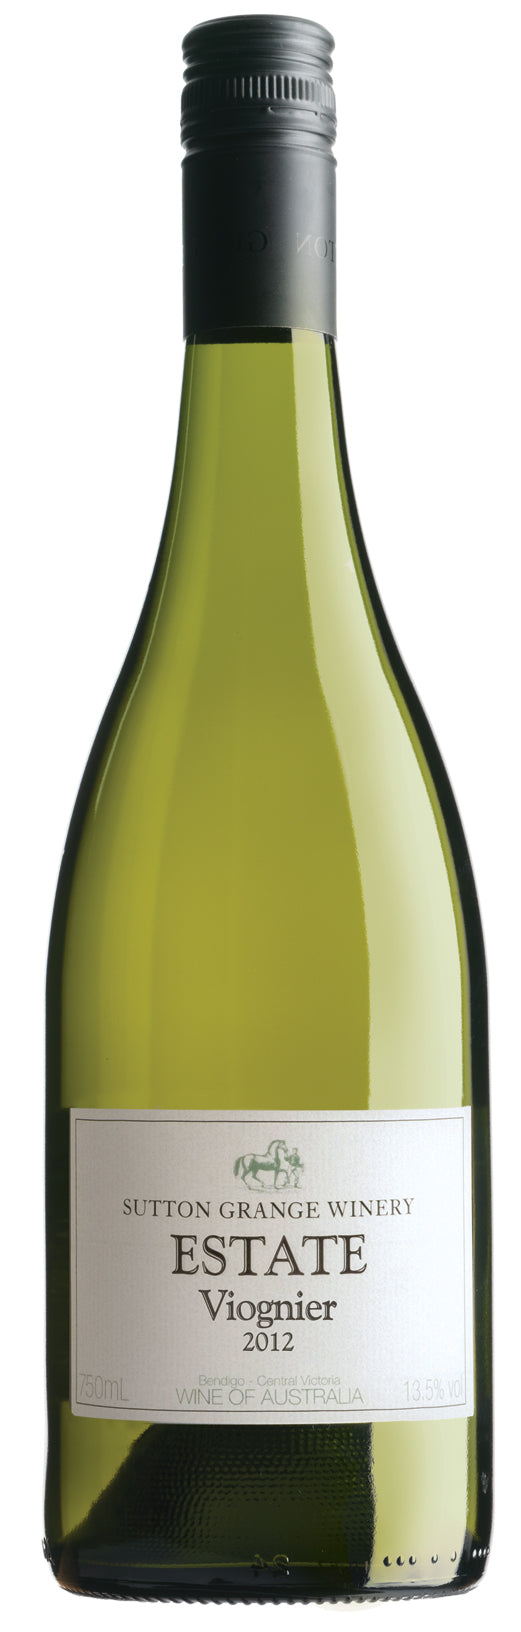 2013 Sutton Grange Estate Viognier